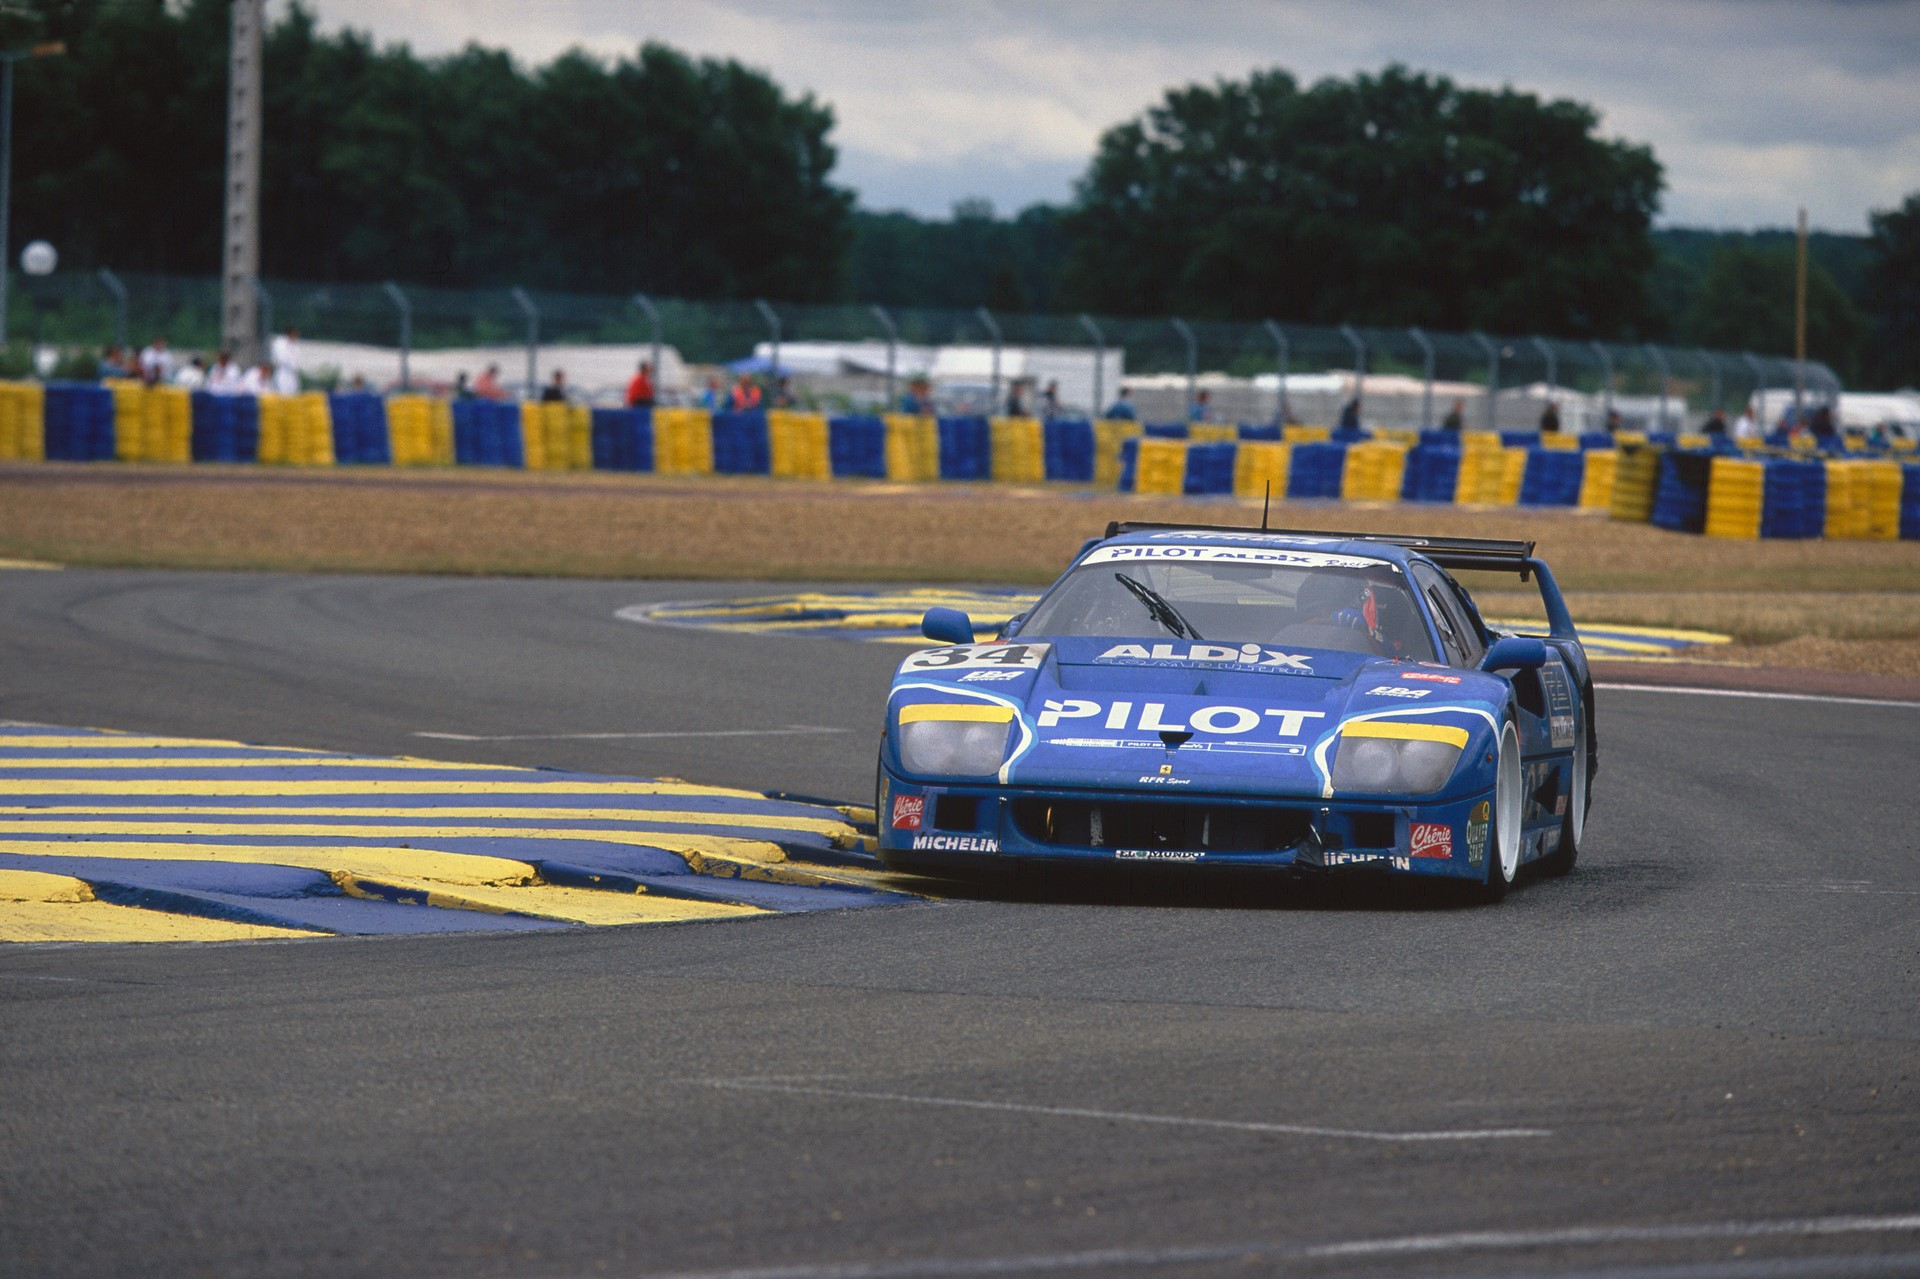 Chassis no. 74045 at the 1995 24 Hours of Le Mans, where it finished 12th overall.